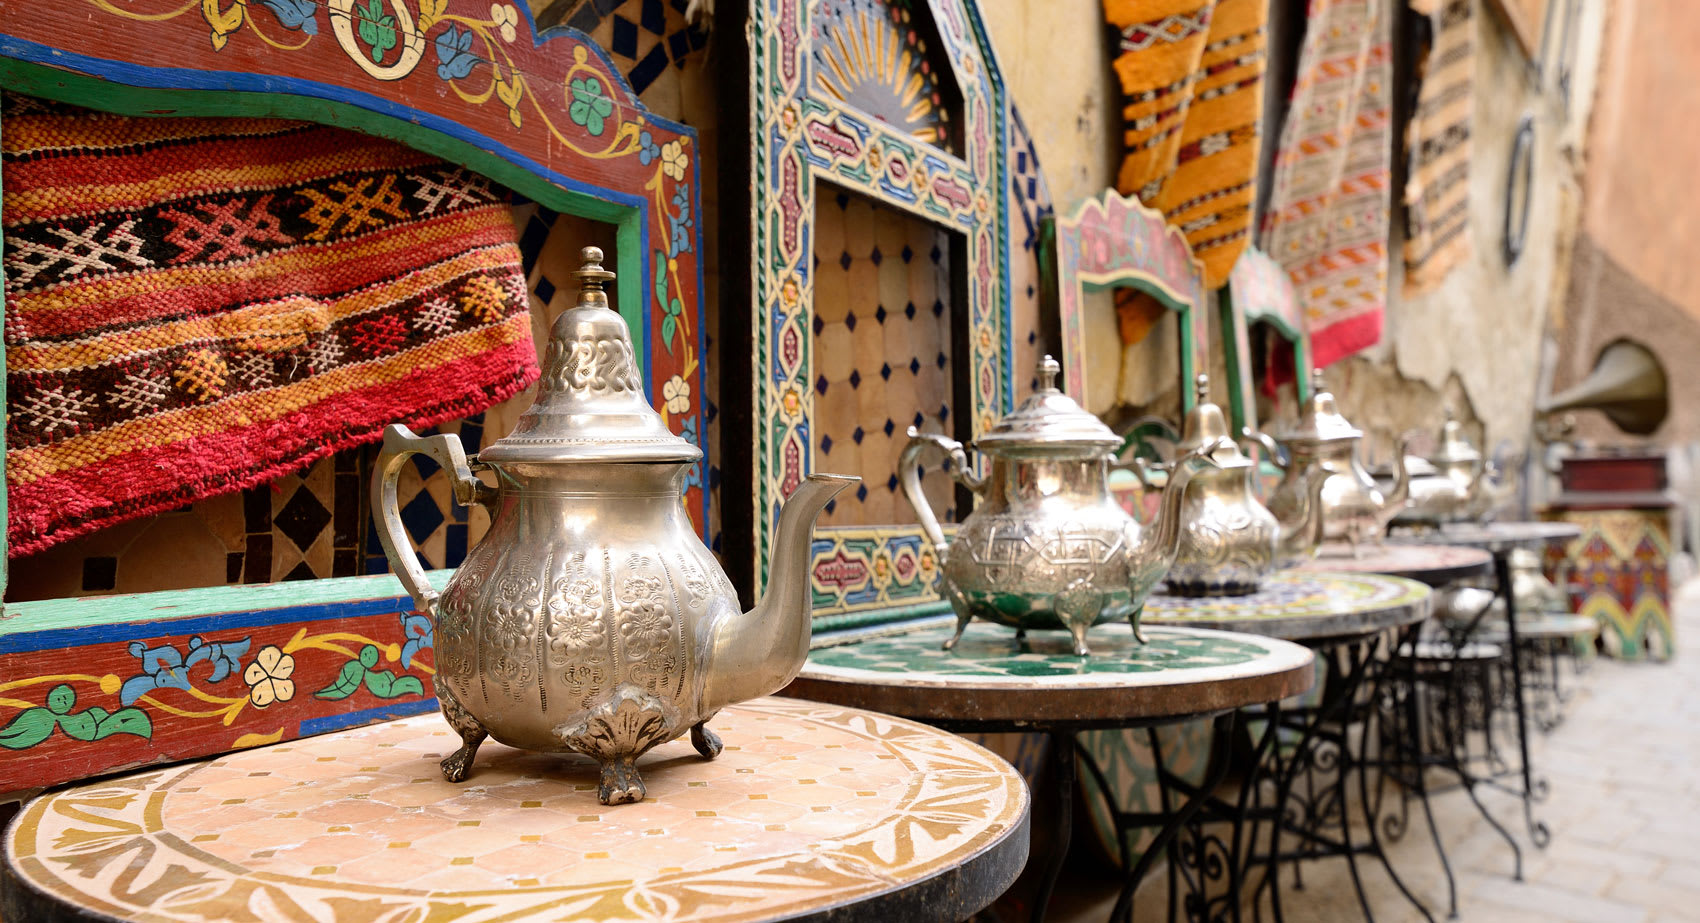 Marrakesh Market with pained coloured tables each with a large golden teapot on it